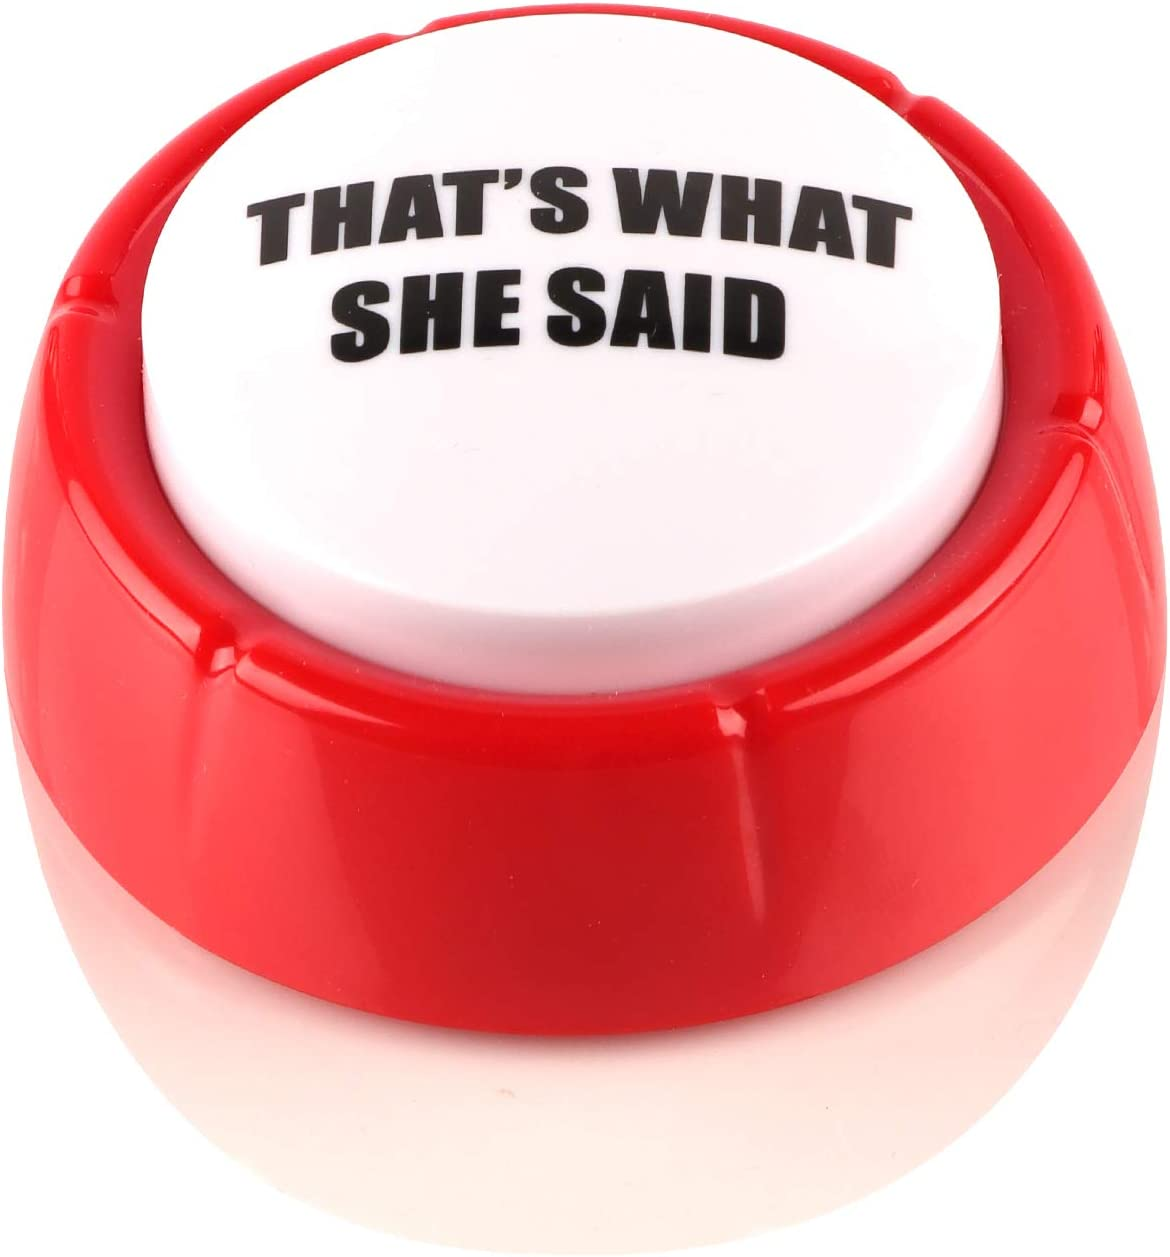 Madanar That's What She Said Easy Electronic Button Funny Classic Office Quote Gag Gift